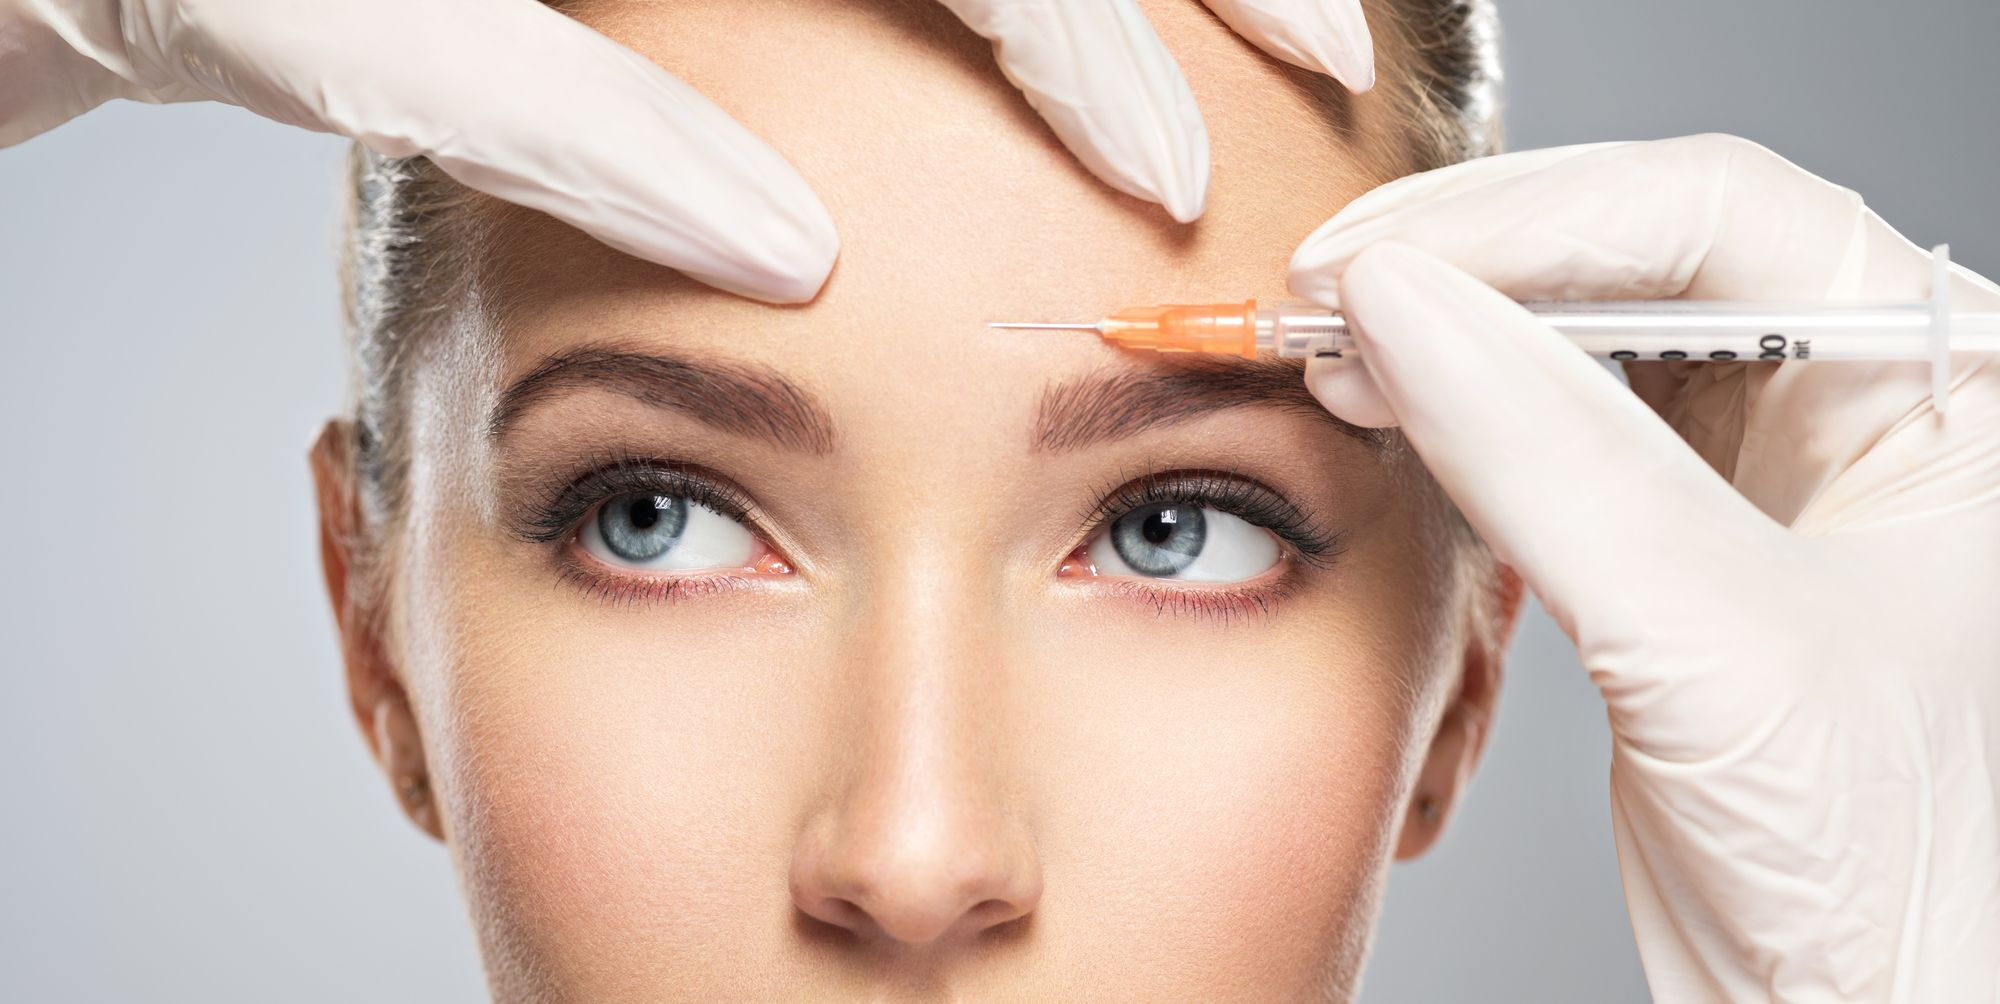 The important reason why Superdrug's botox service will involve a mental health check